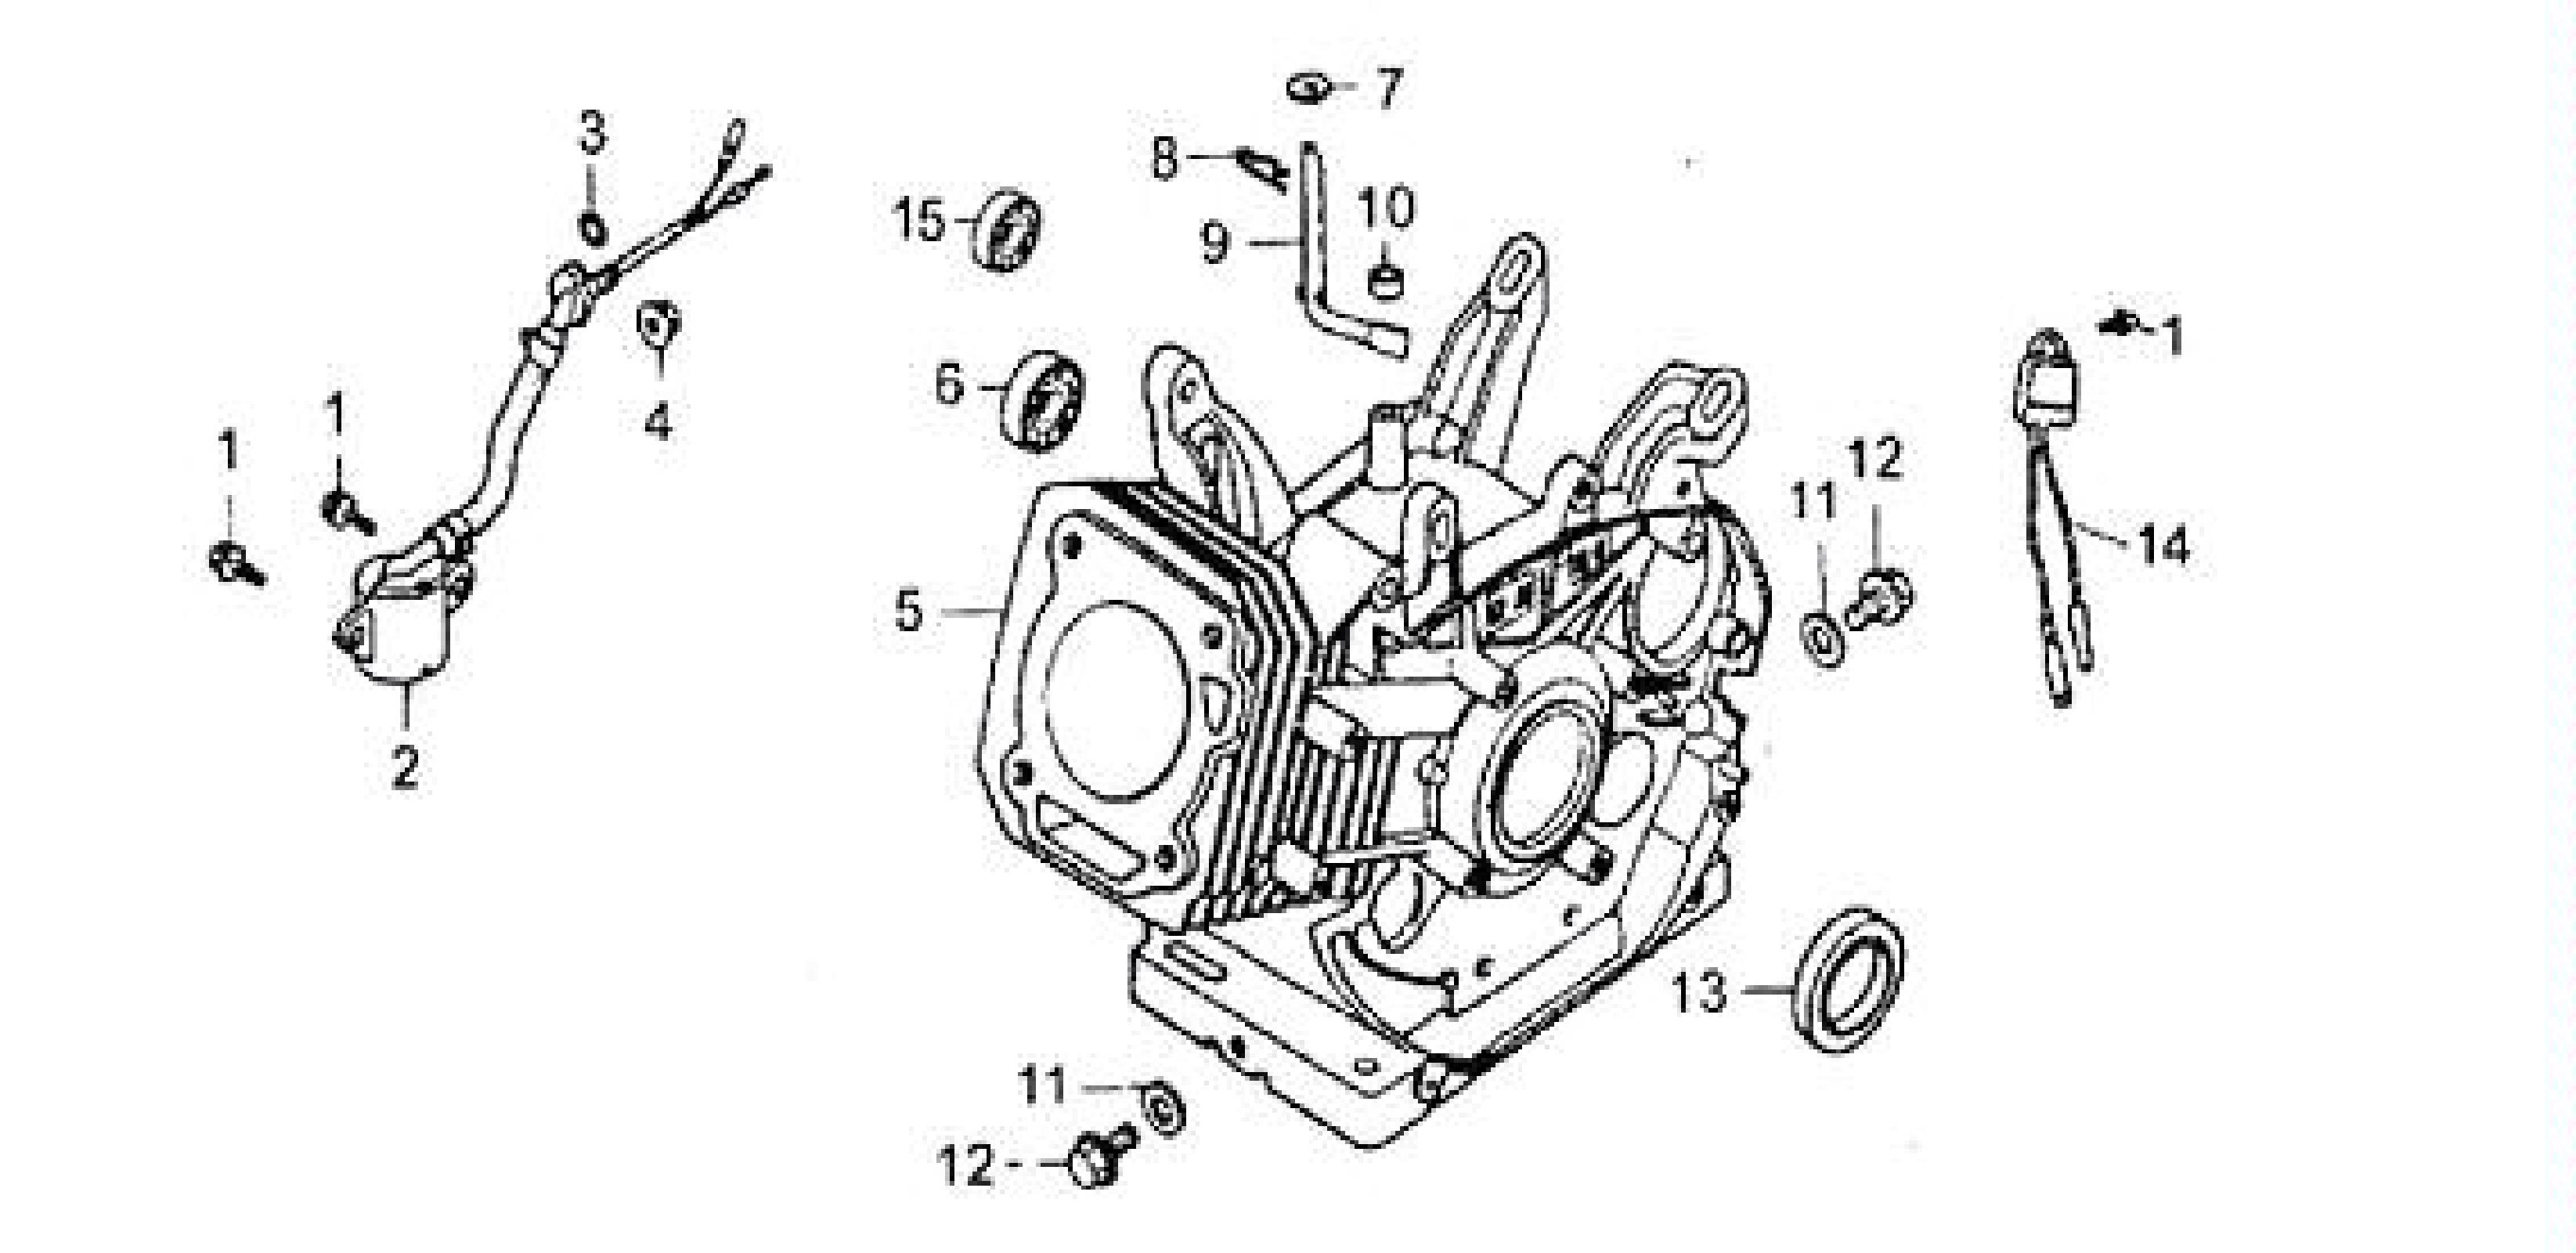 honda gx390 engine parts diagram  honda  wiring diagram images